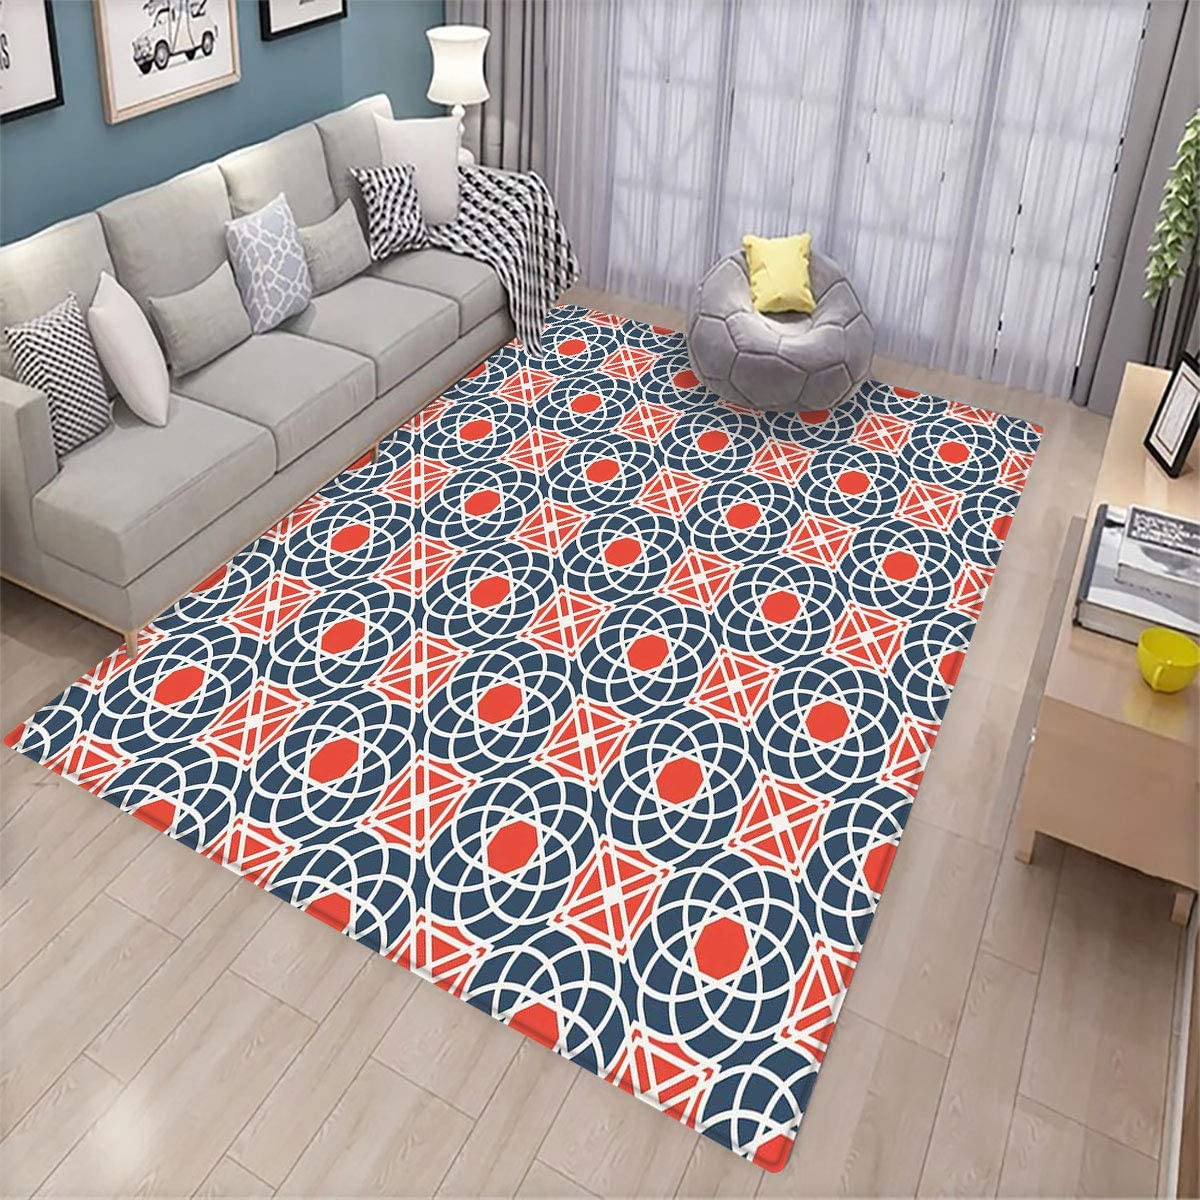 Geometric,Area Rug Bedroom Decor,Floral Intricate Lines and Squares Abstract Image Middle Eastern,Can be Used for Floor Decoration,6.6'x9' Cadet Blue Vermilion White